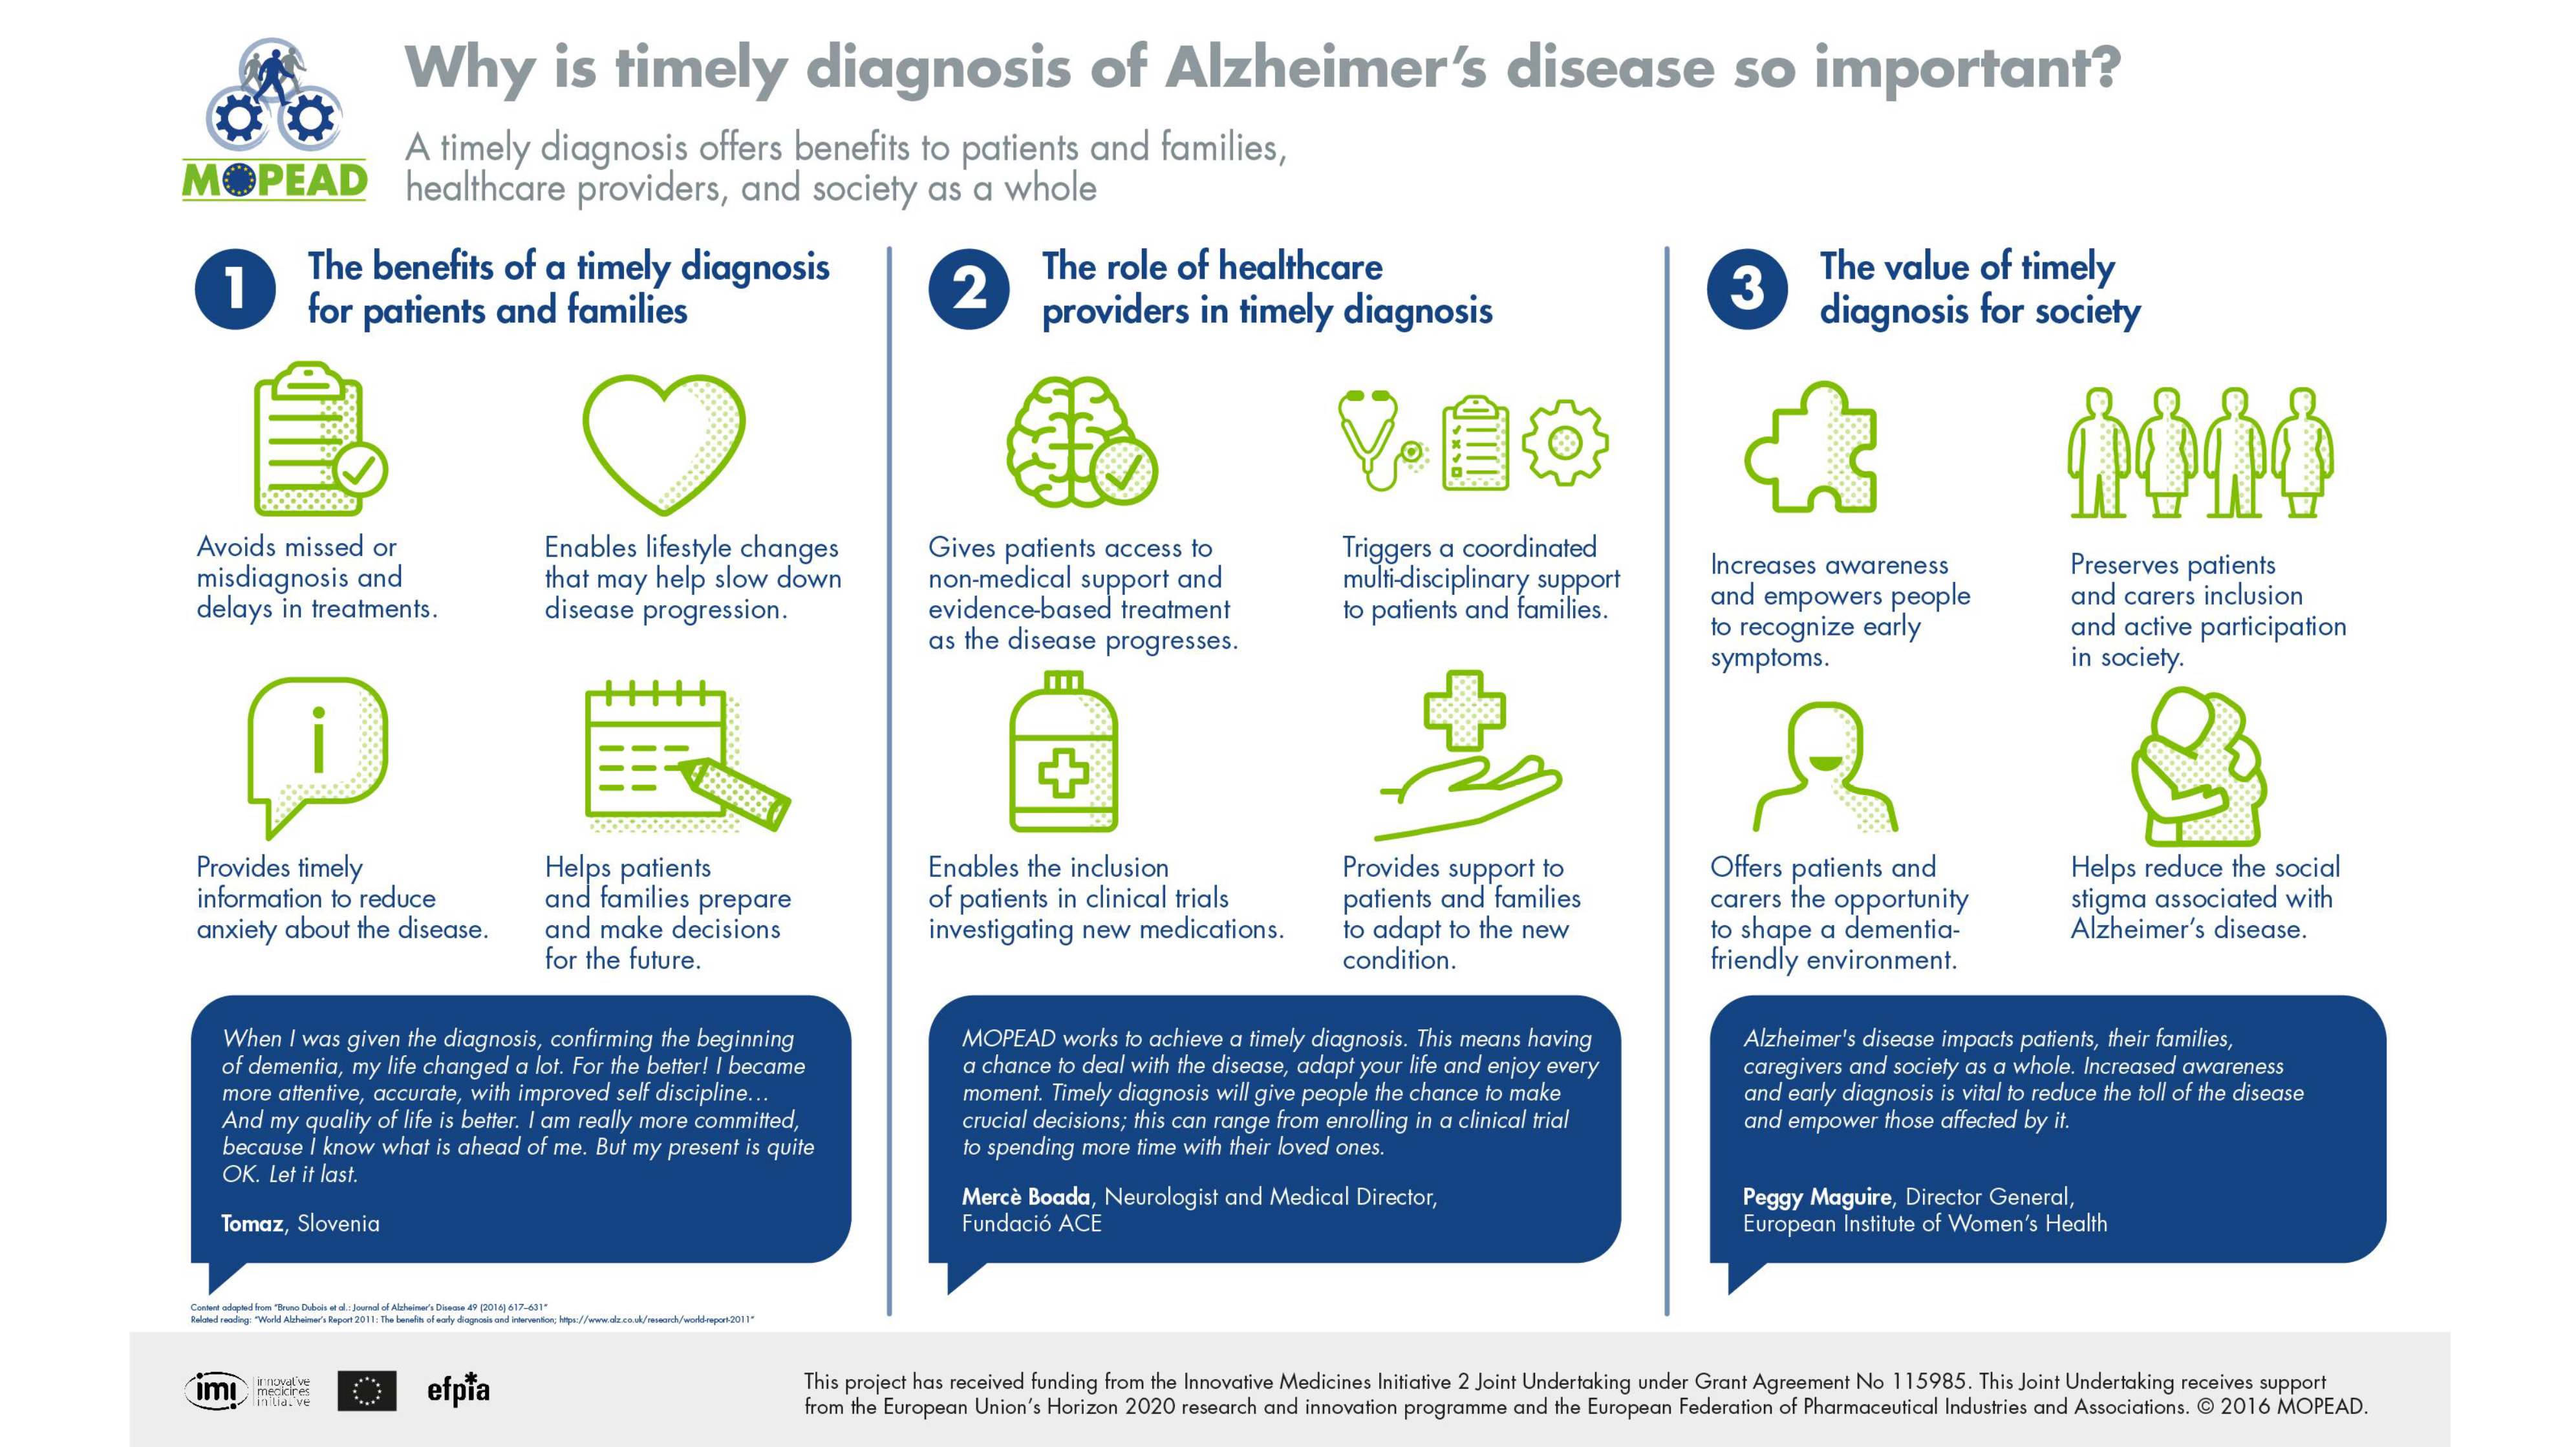 Why is a timely diagnosis of Alzheimer's disease so important - Models of Patient Engagement for Alzheimer's disease infographic